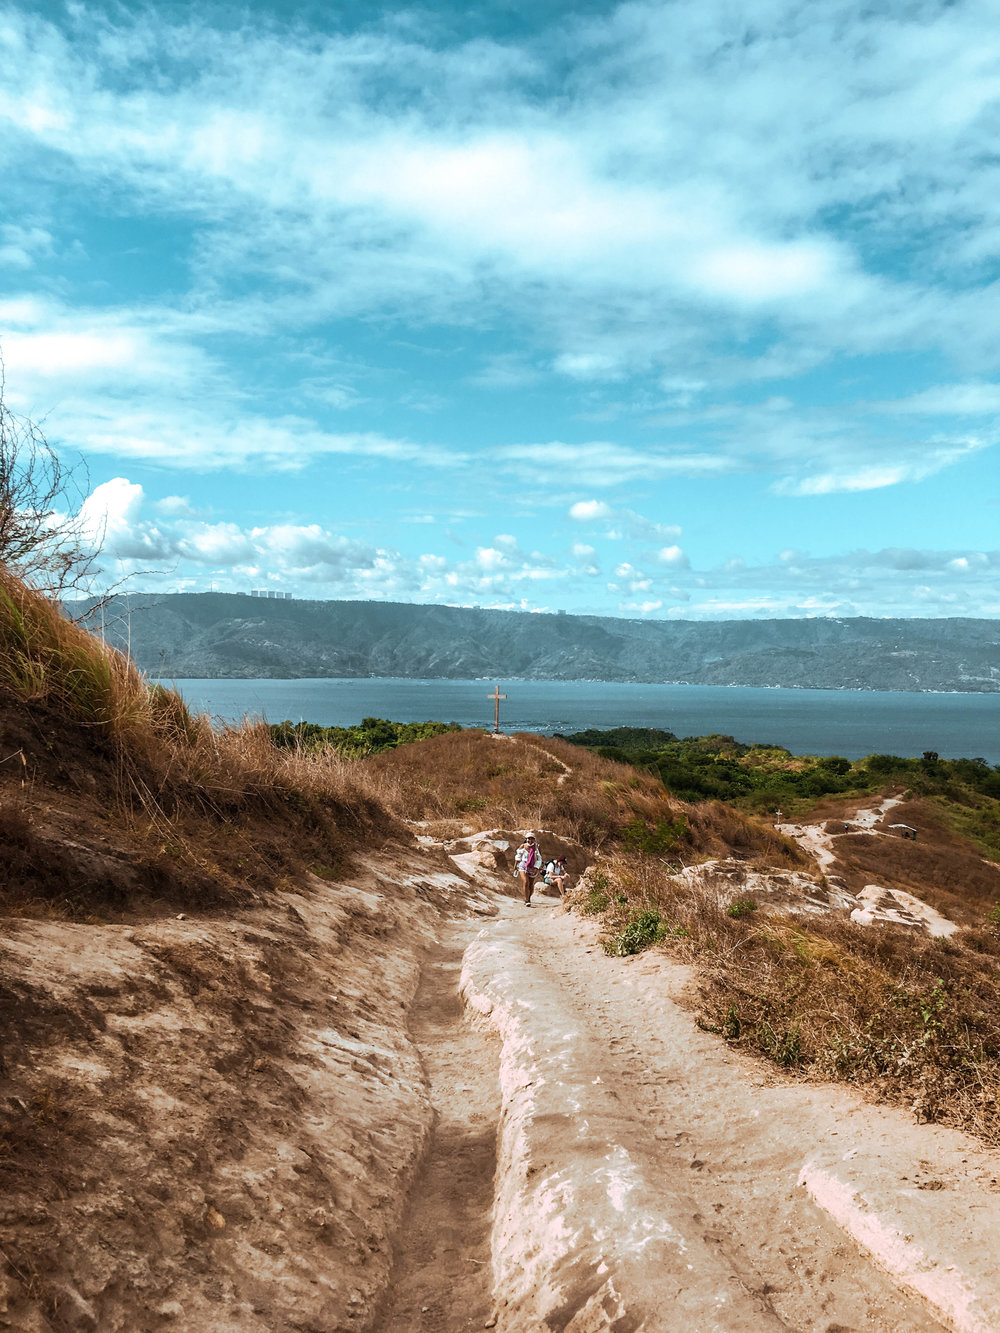 Hiking Taal Volcano in Tagaytay, Batangas Province - Luzon, Philippines